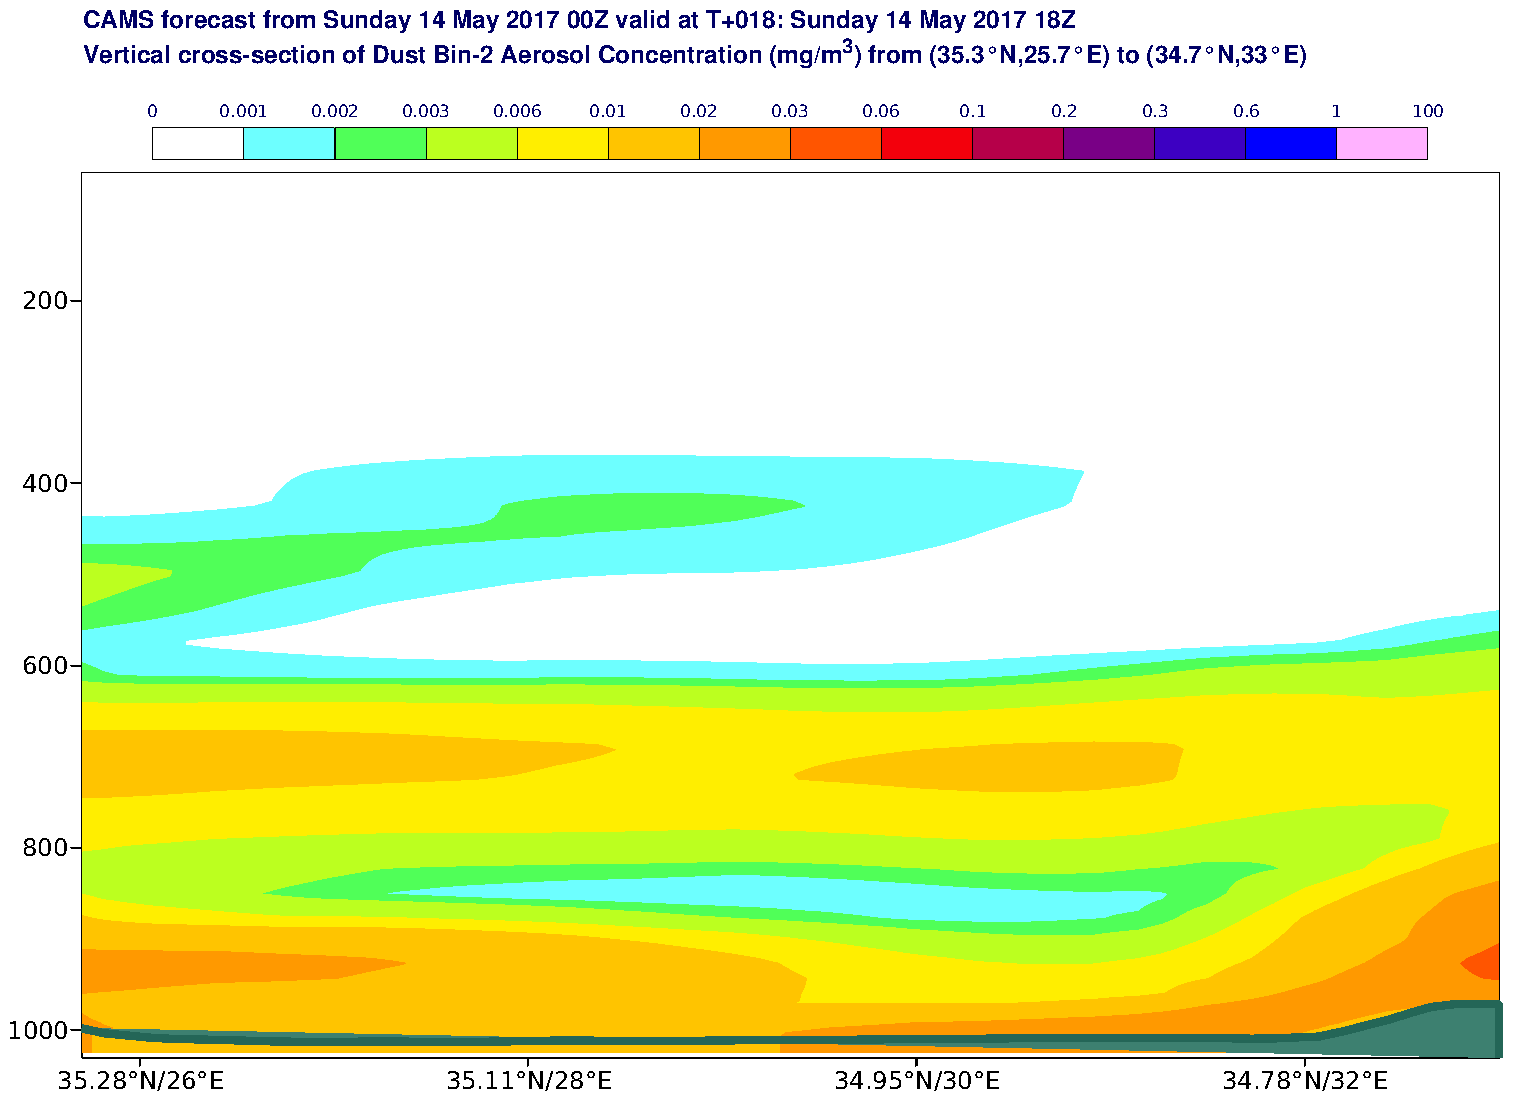 Vertical cross-section of Dust Bin-2 Aerosol Concentration (mg/m3) valid at T18 - 2017-05-14 18:00